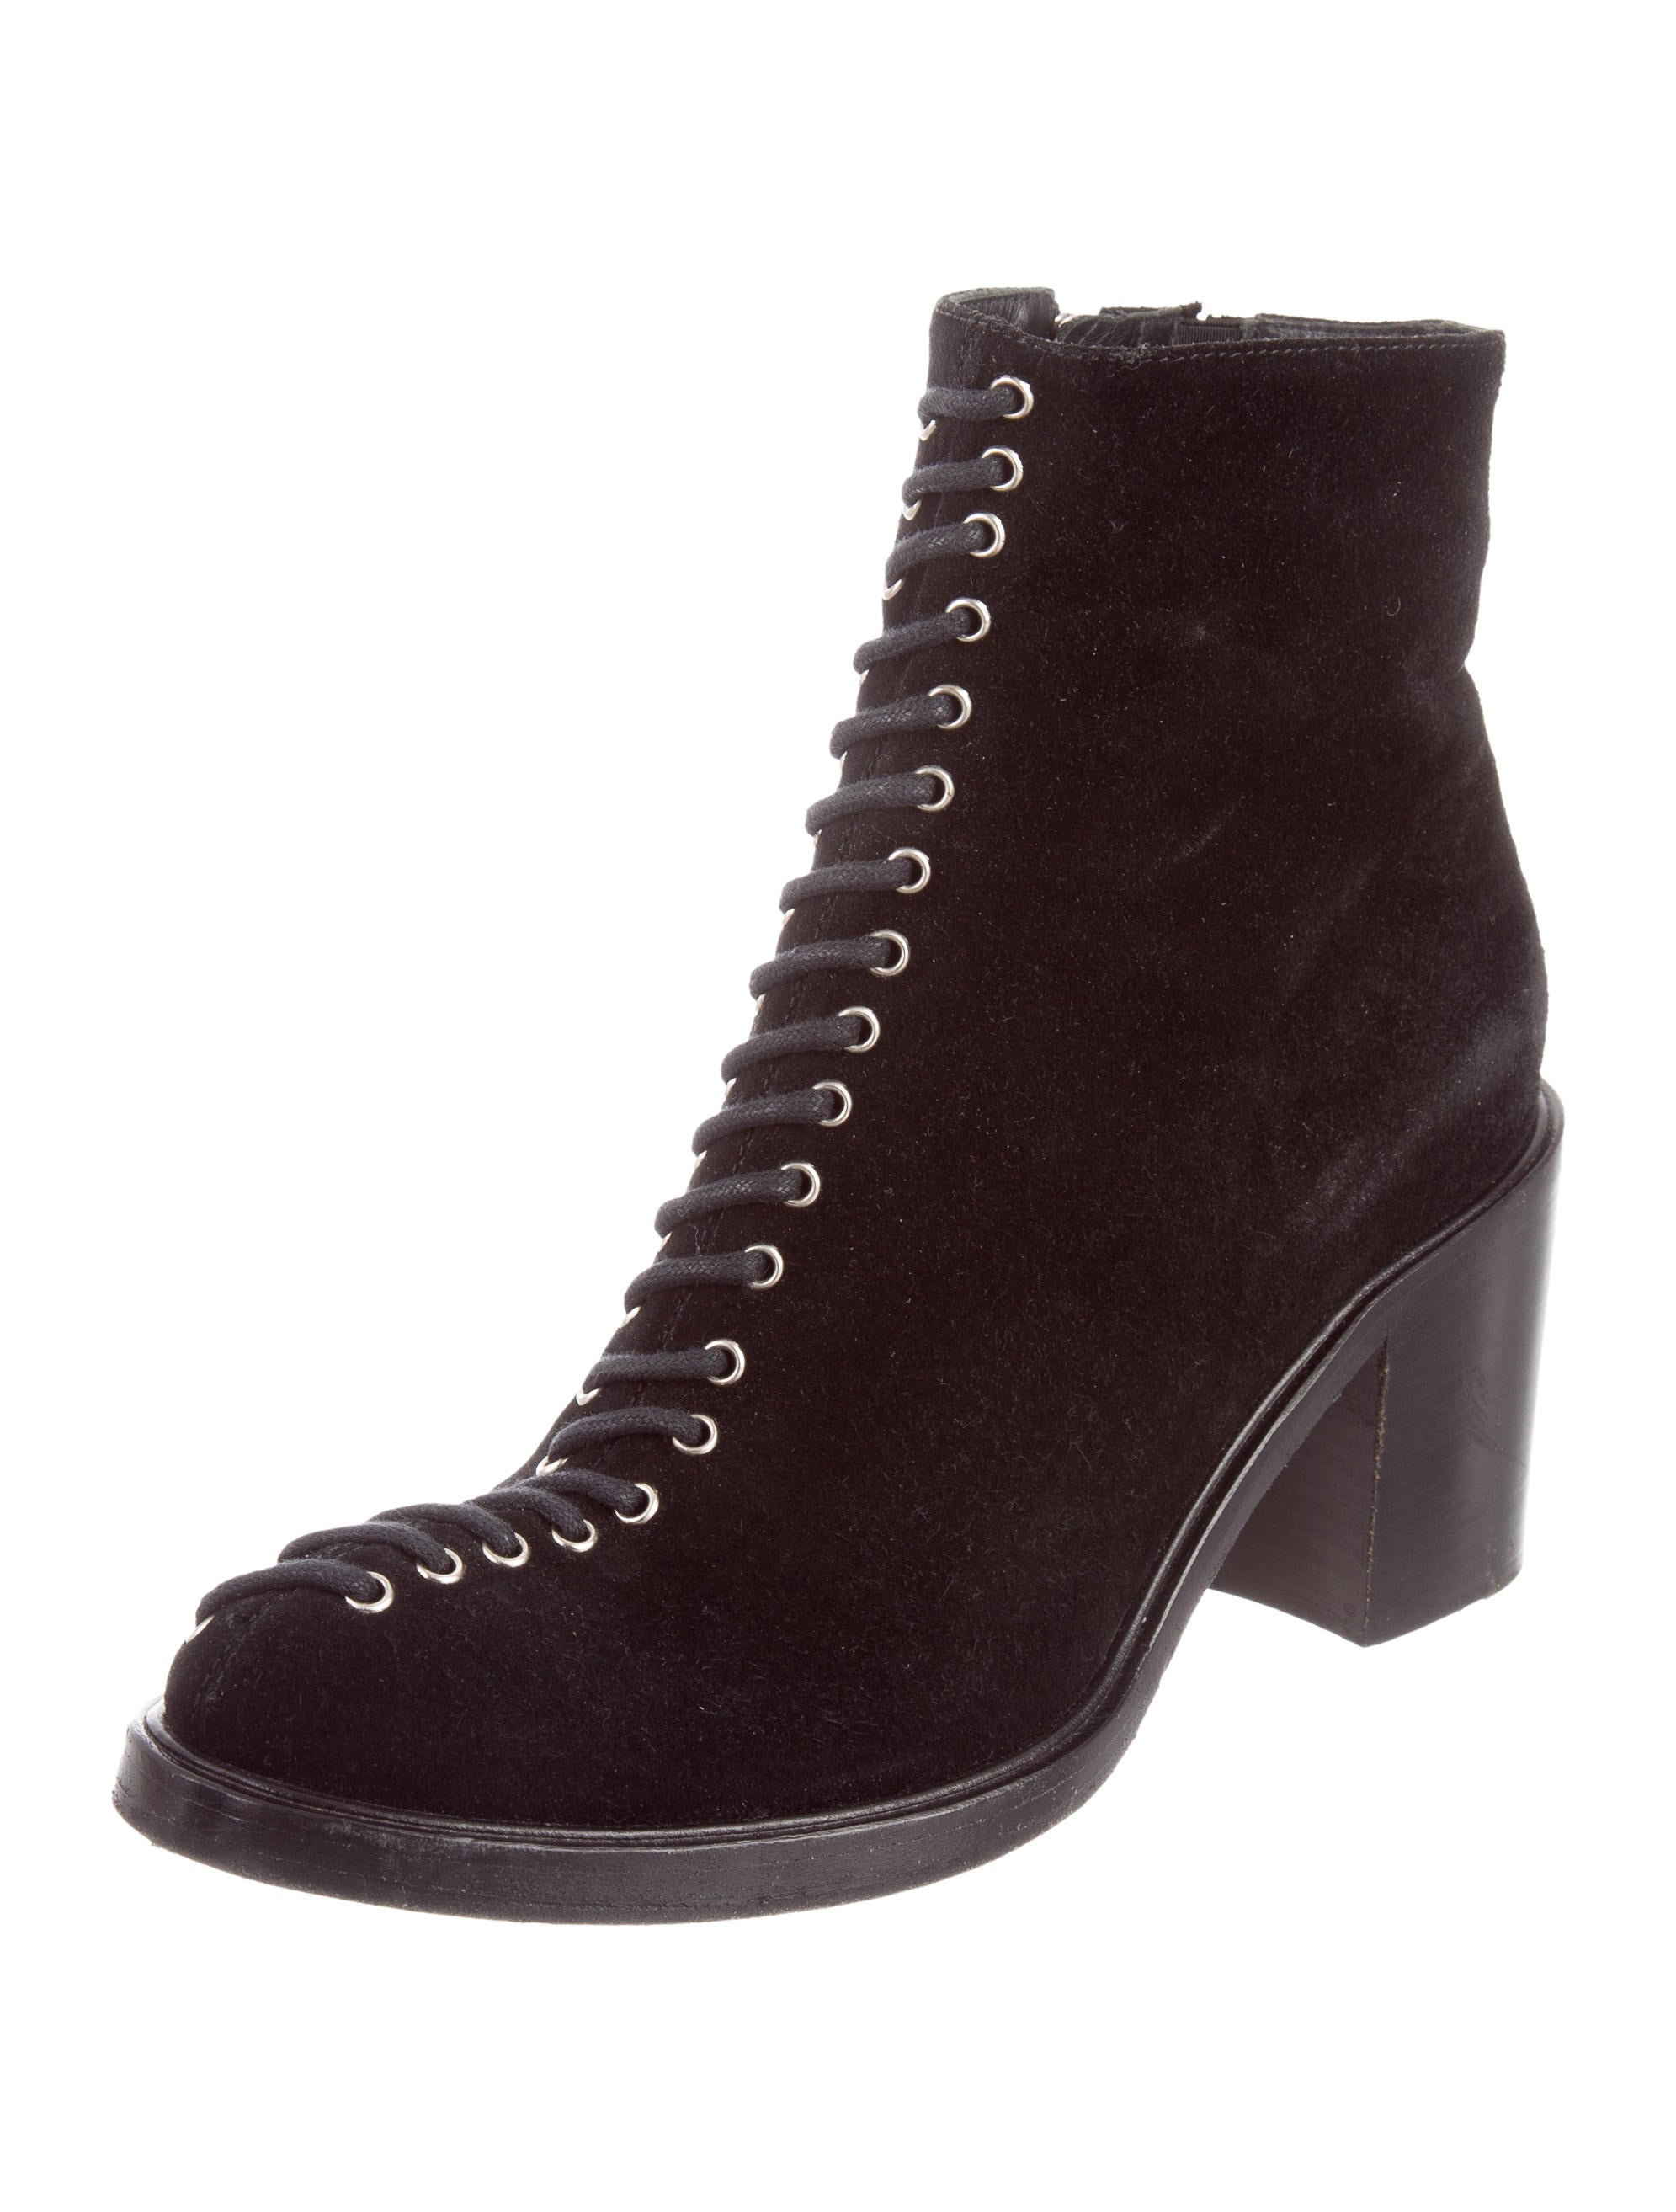 mcq by mcqueen suede lace up ankle boots shoes